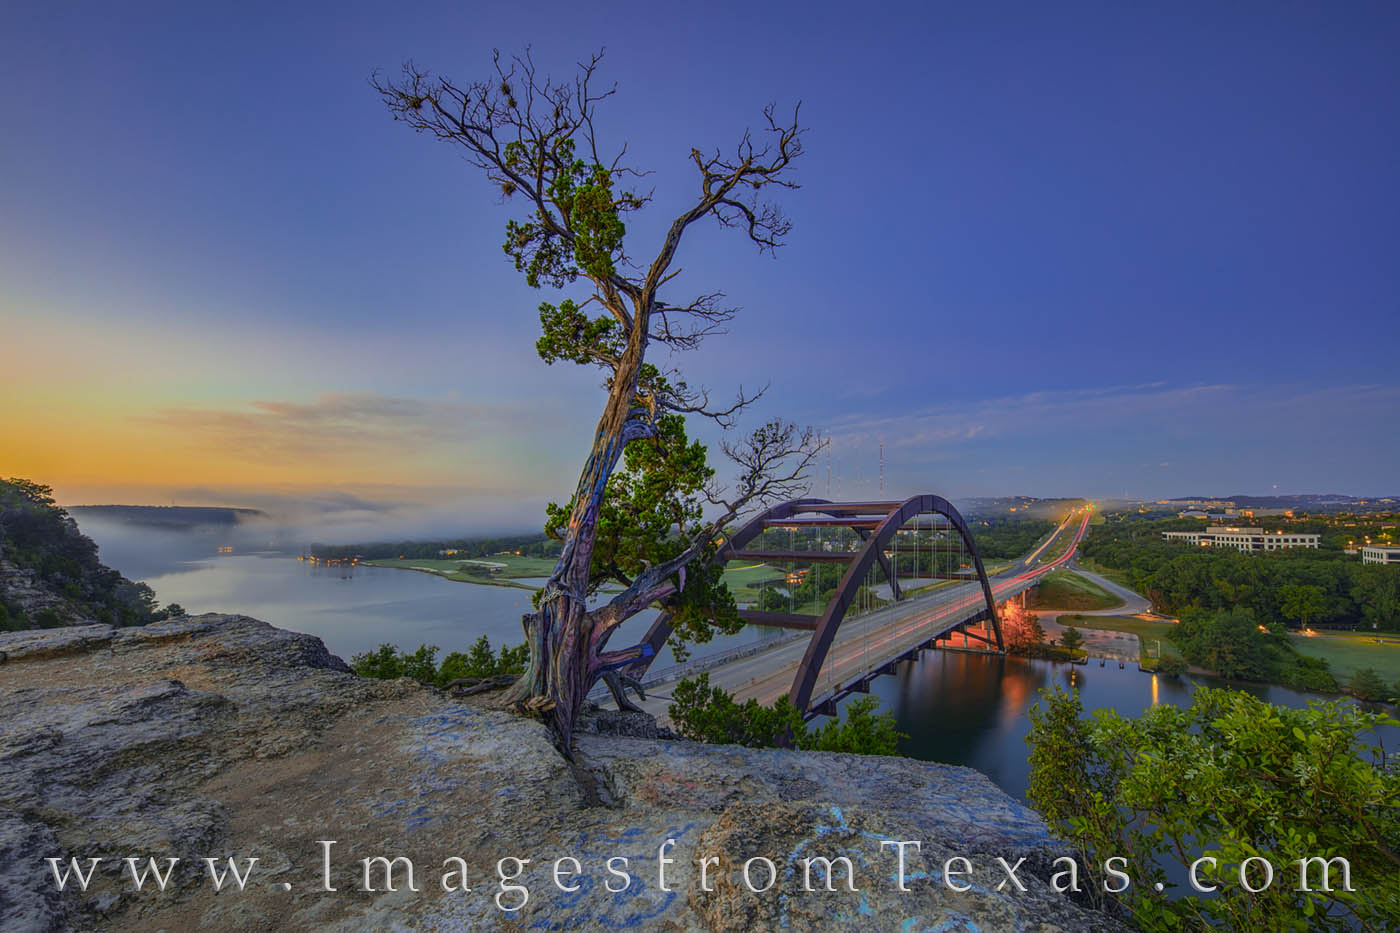 A storm had blown through Austin the night before, and on this morning in Austin, Texas, fog hung low over the Colorado River...